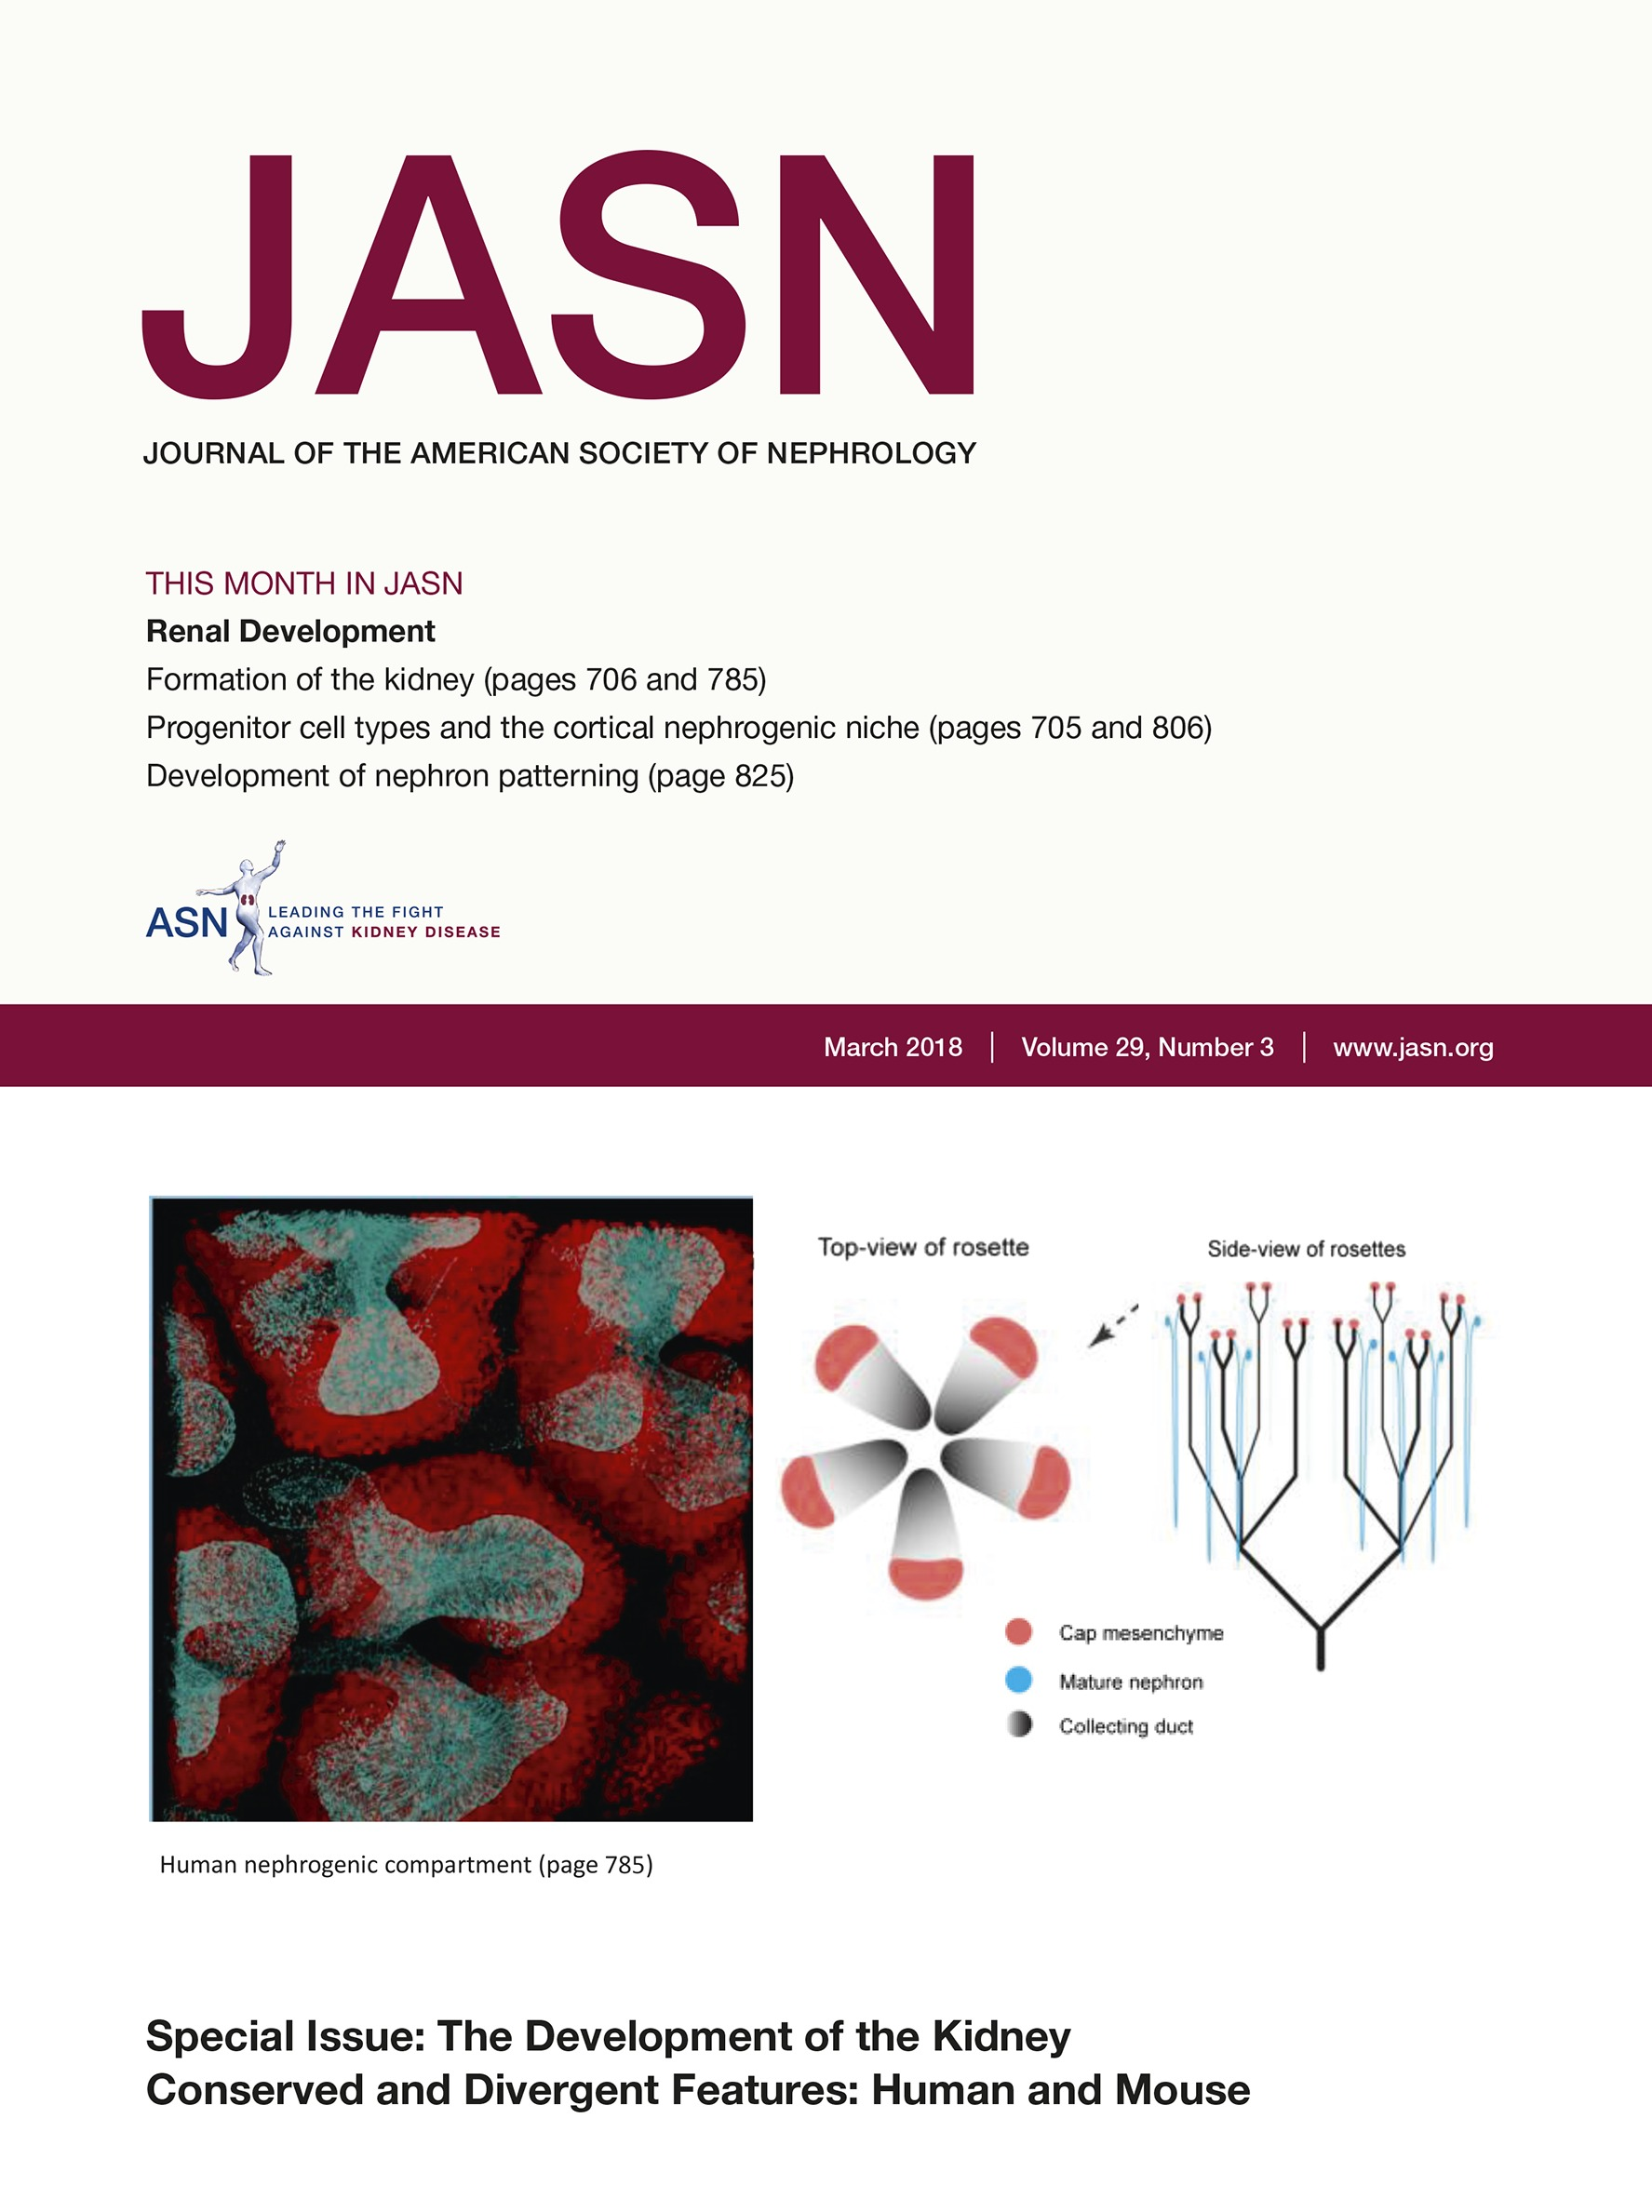 Proteomic Profiling Reveals The Transglutaminase 2 Externalization How To Protect A Reed Switch From Specific Loads Cynergy 3 Pathway In Kidneys After Unilateral Ureteric Obstruction American Society Of Nephrology